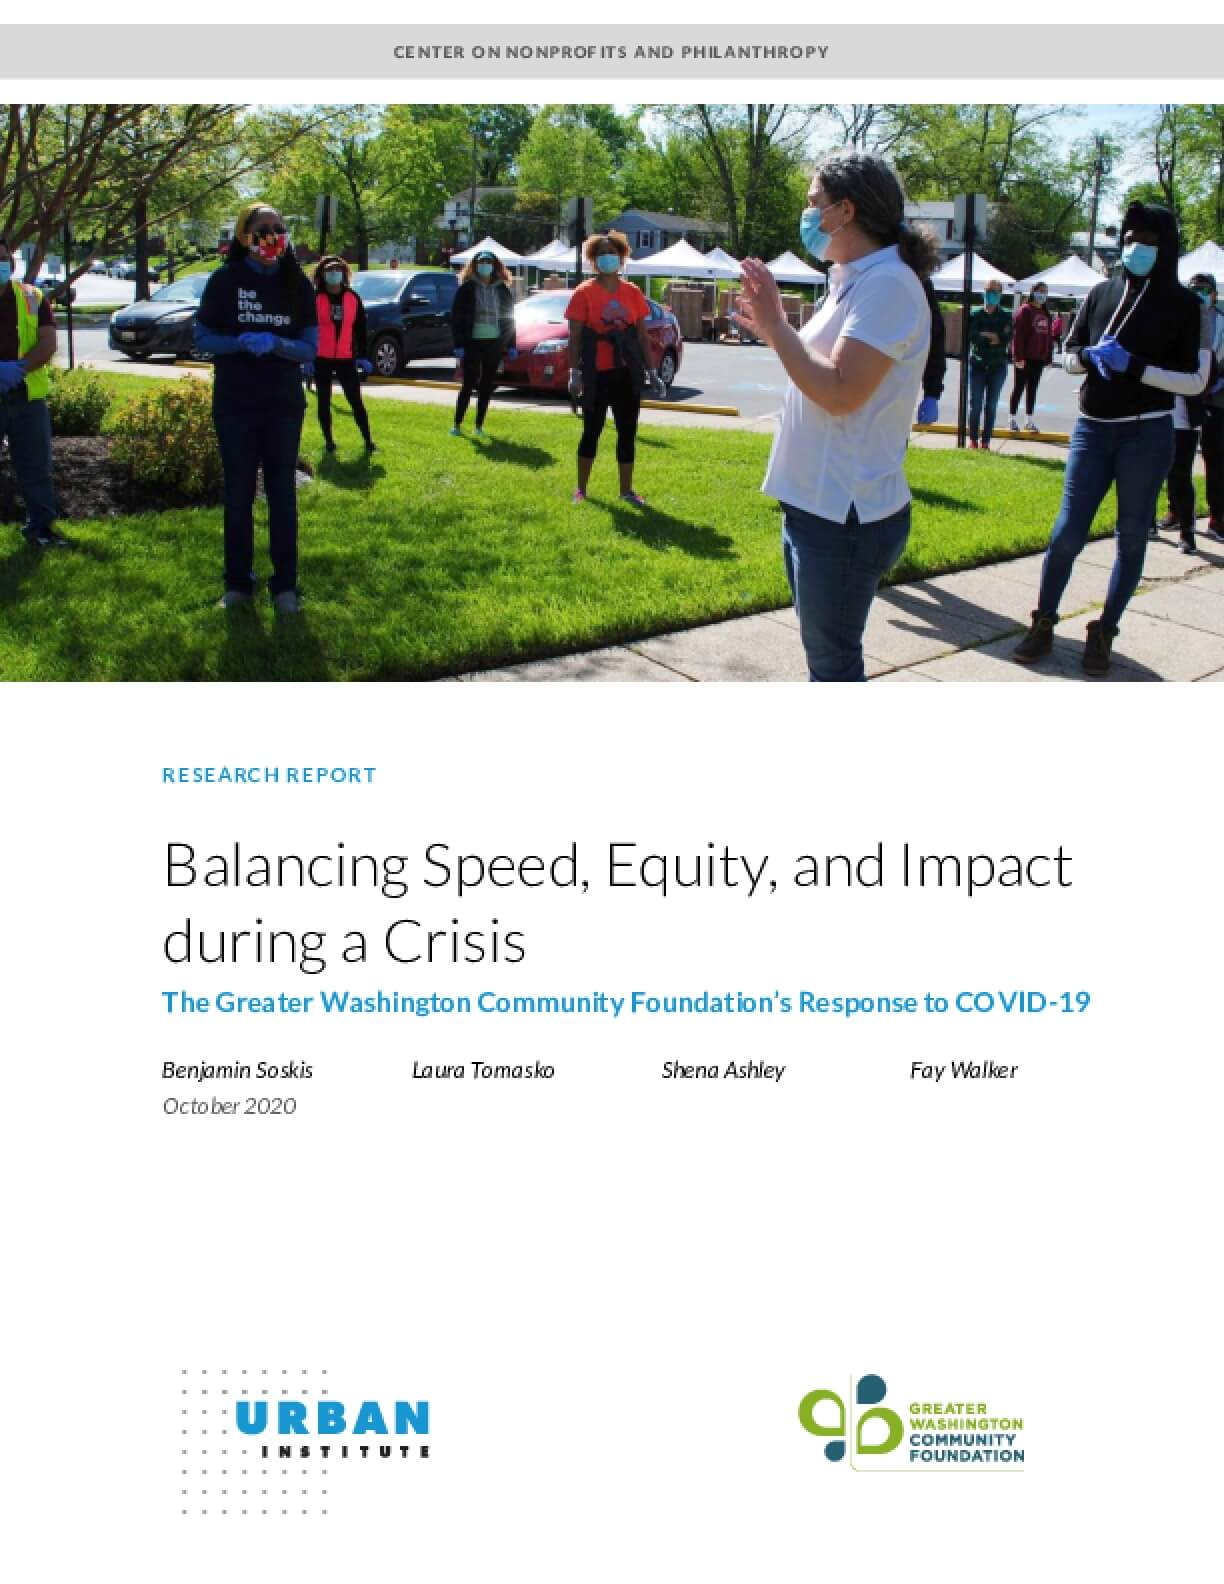 Balancing Speed, Equity, and Impact during a Crisis: The Greater Washington Community Foundation's Response to COVID-19